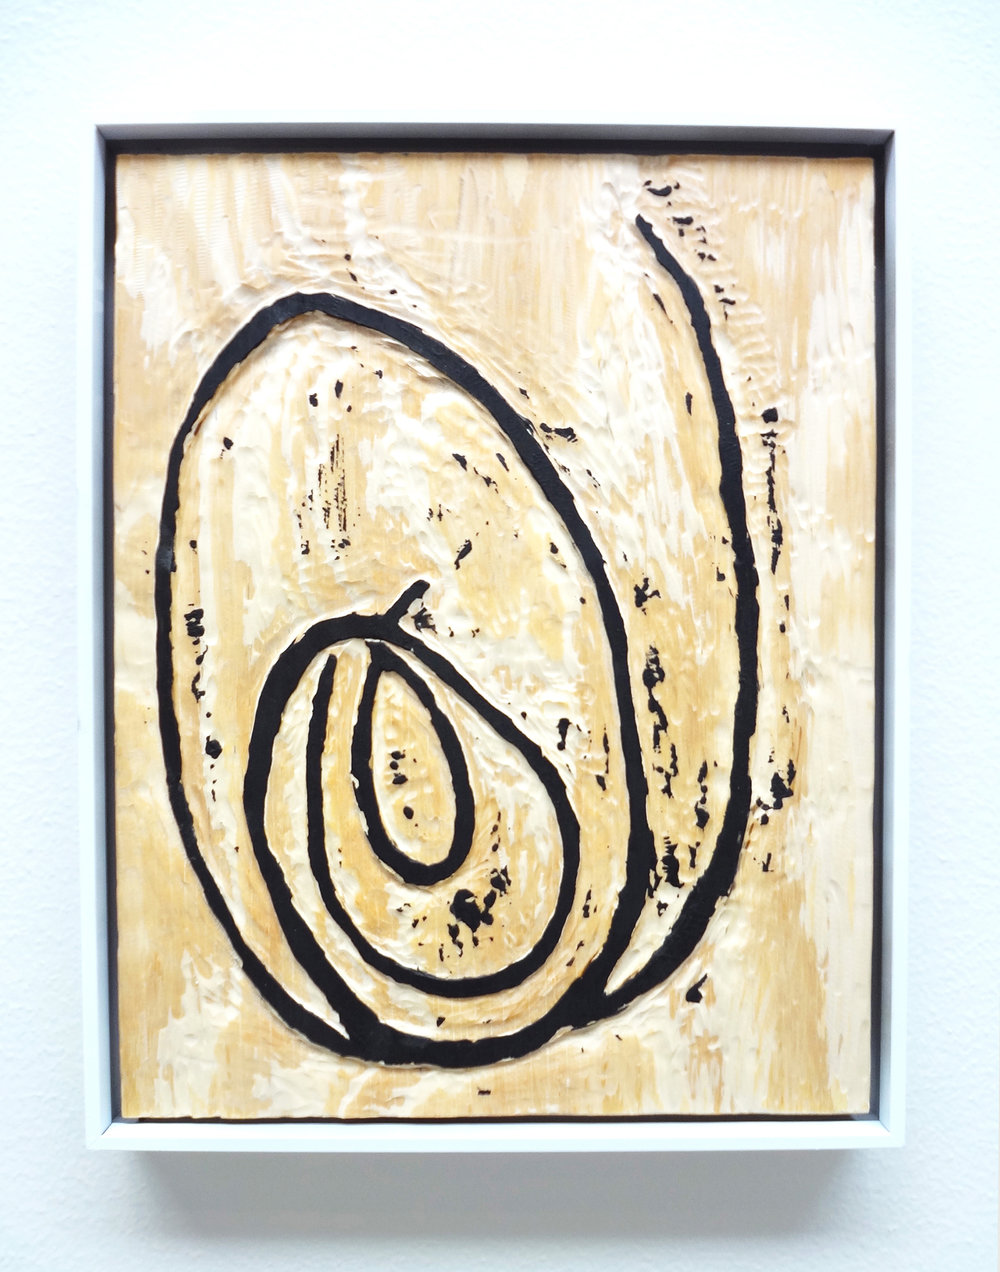 Meghan Gerety  Untitled 08 , 2015 blockprint ink on plywood 15 x 12 in. framed in aluminum